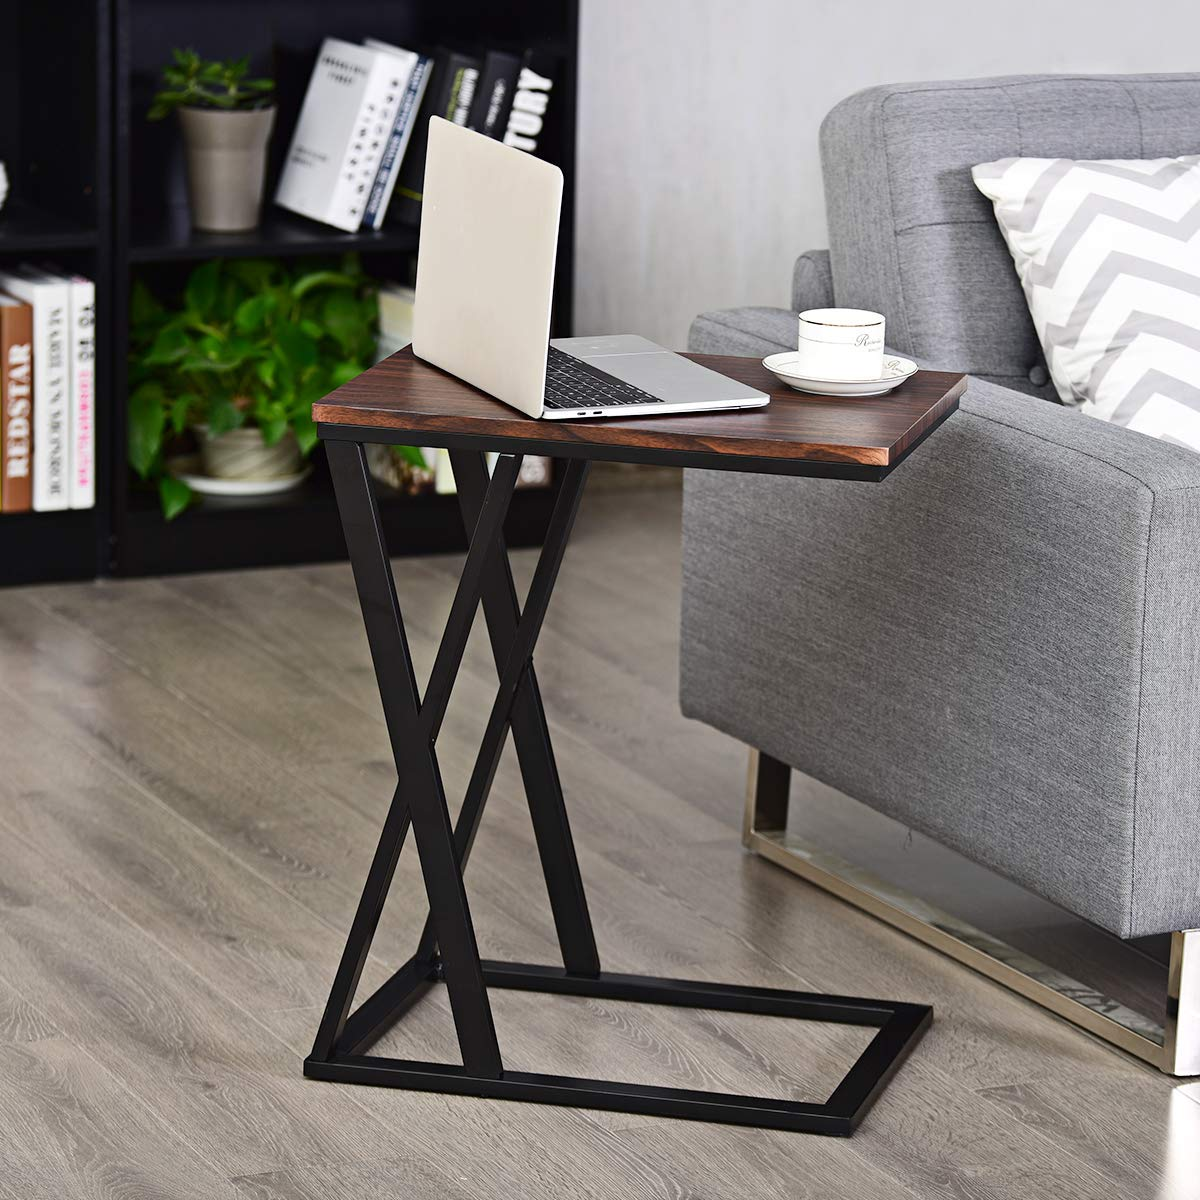 Tangkula Sofa Side Table, X-shaped Snack Table End Table, Coffee Tray Laptop Table Wood Look Finish Metal Frame, Over bed Table, Portable Table for for Notebook Tablet Living Room Bedroom 1, Brown